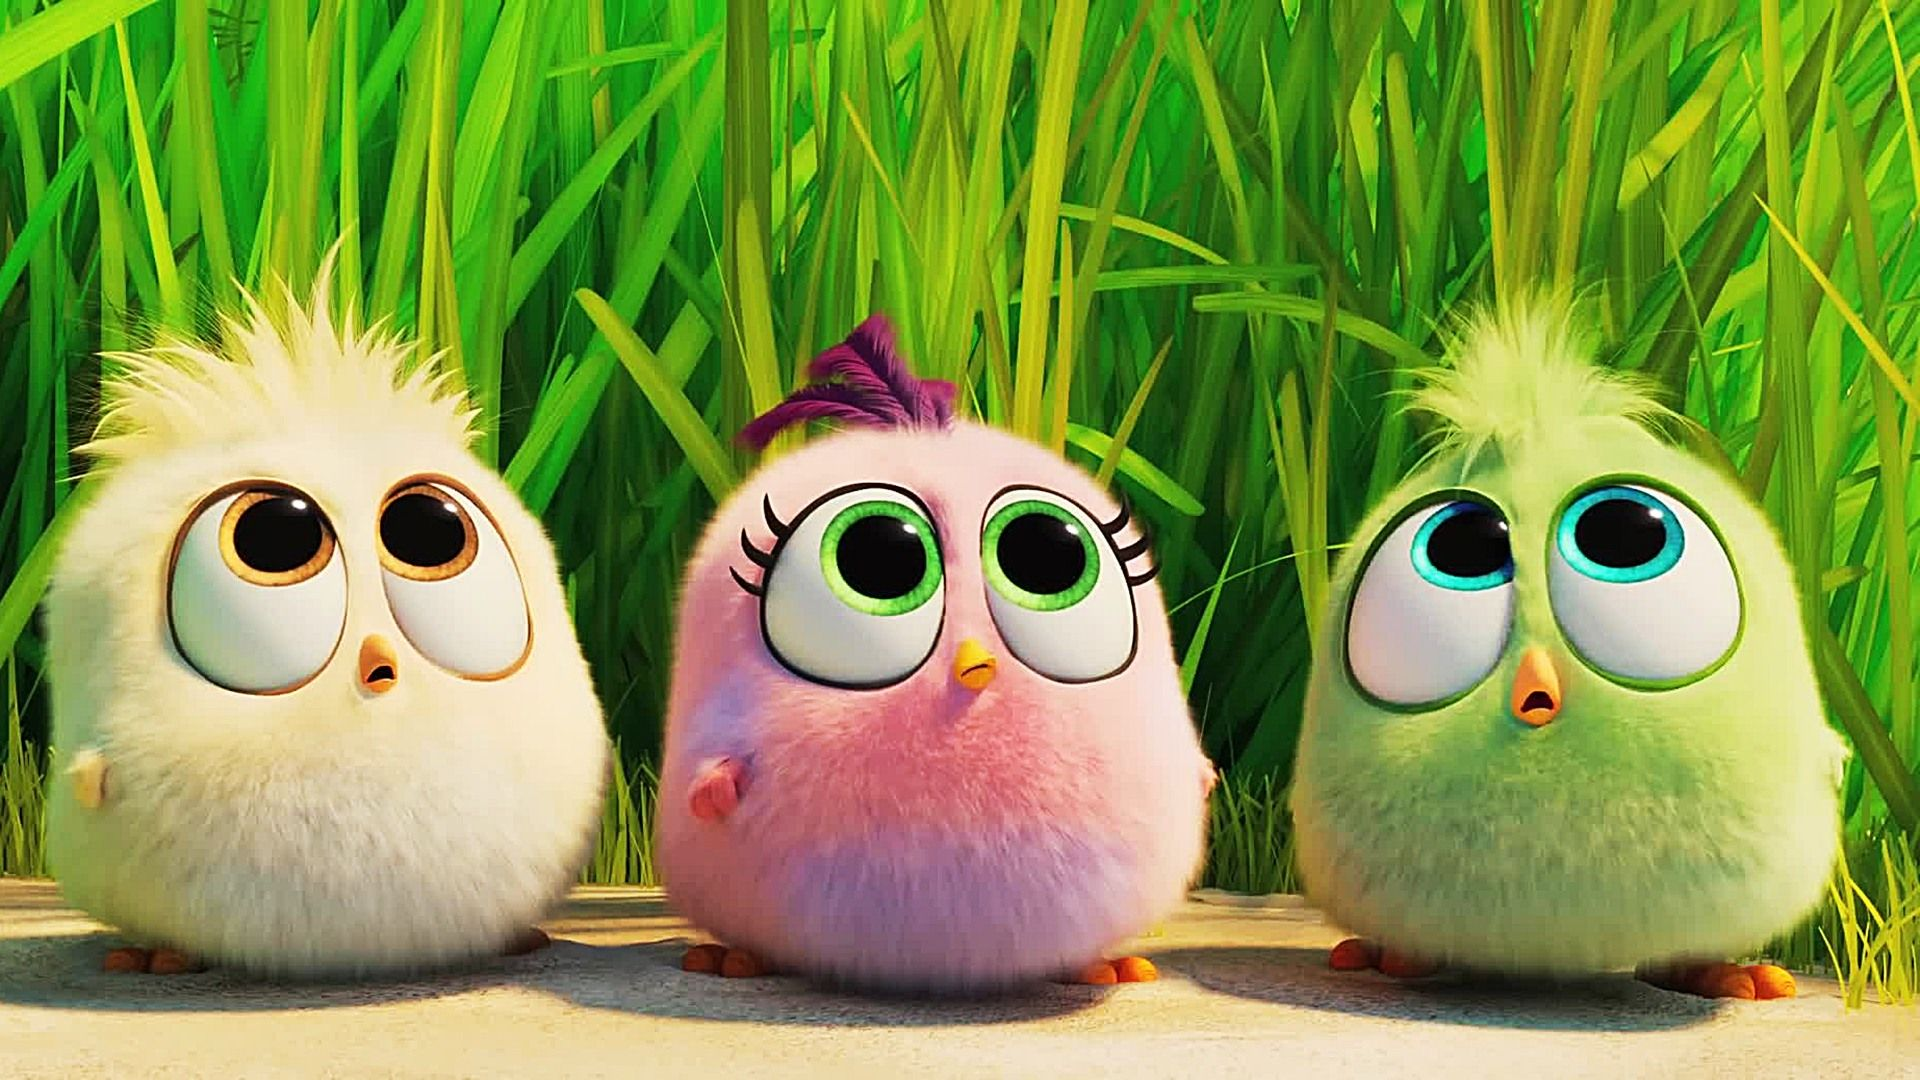 The Angry Birds Movie 2 Wallpapers Top Free The Angry Birds Movie 2 Backgrounds Wallpaperaccess